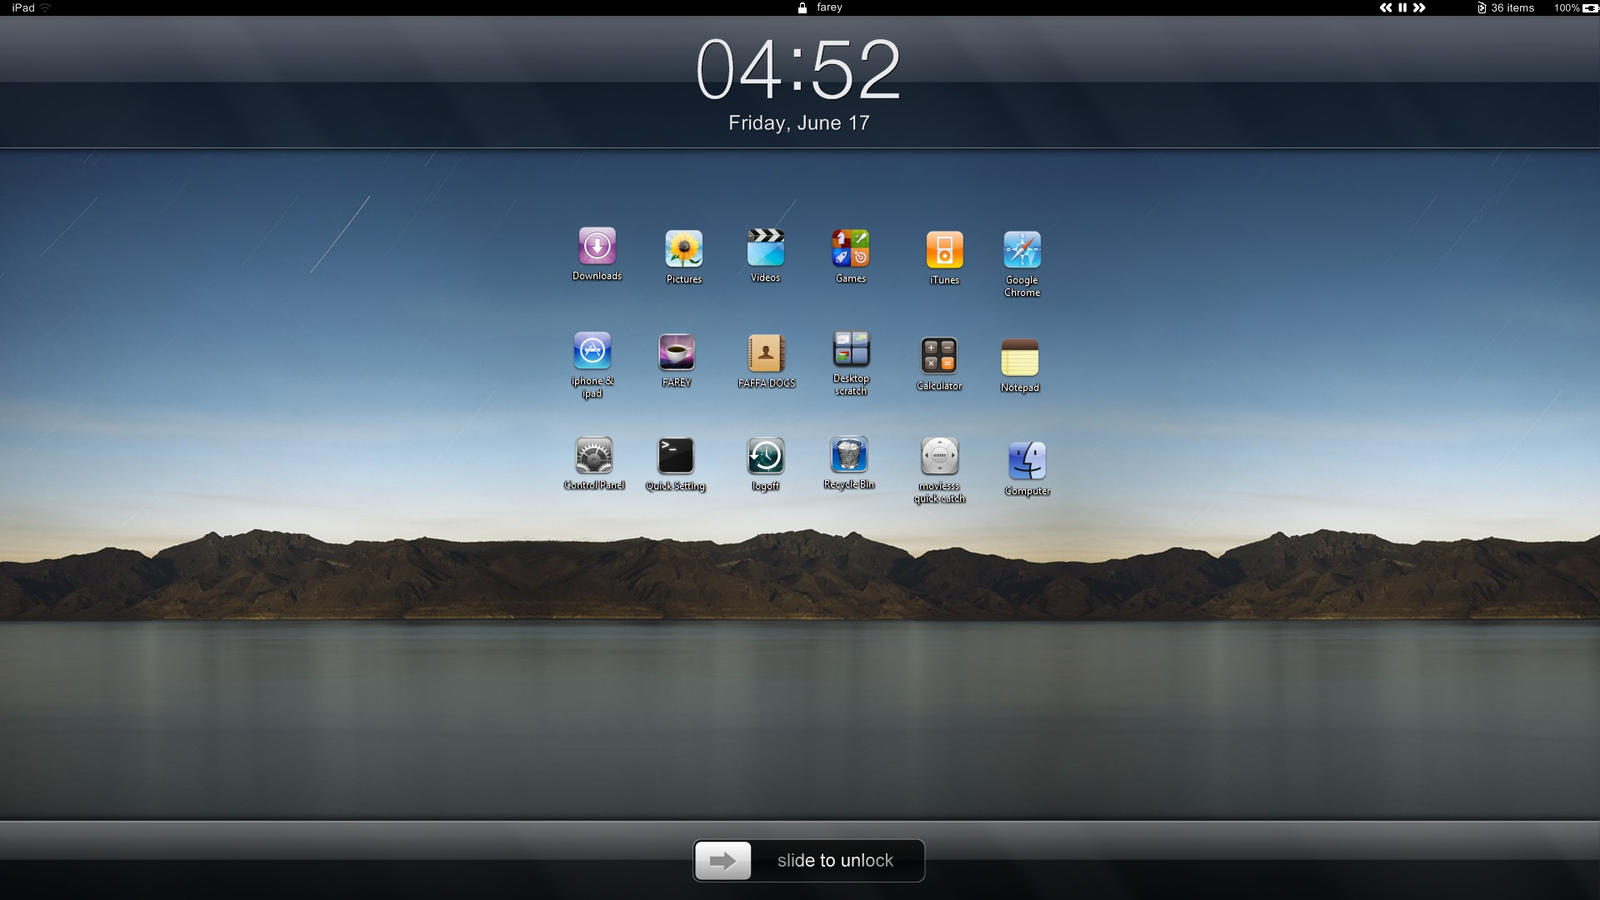 ipad 1 windows 7 desktop by farey07